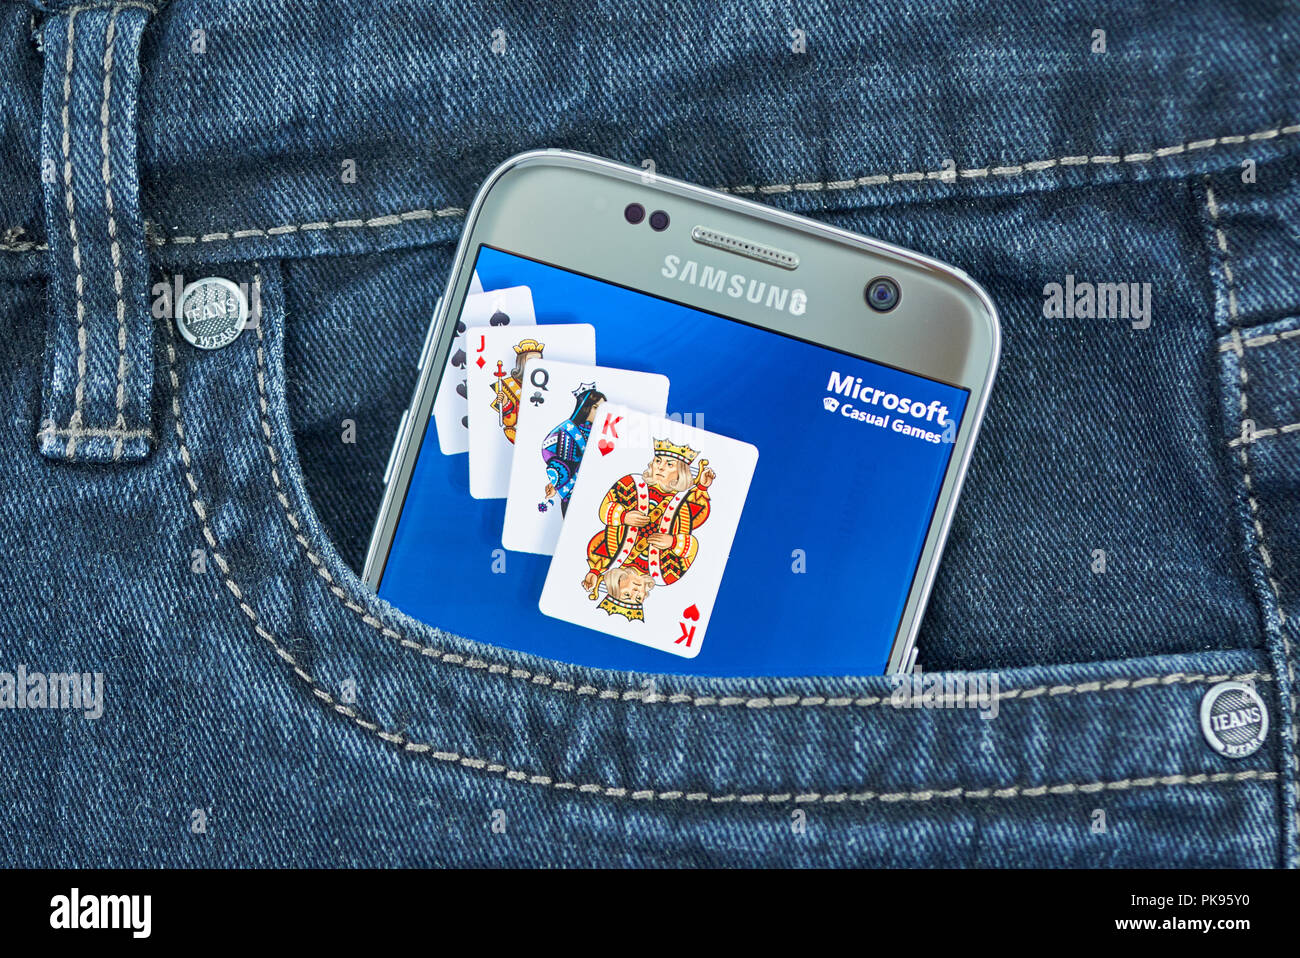 MONTREAL, CANADA - SEPTEMBER 8, 2018: Microsoft Casual Games app on android device. Stock Photo